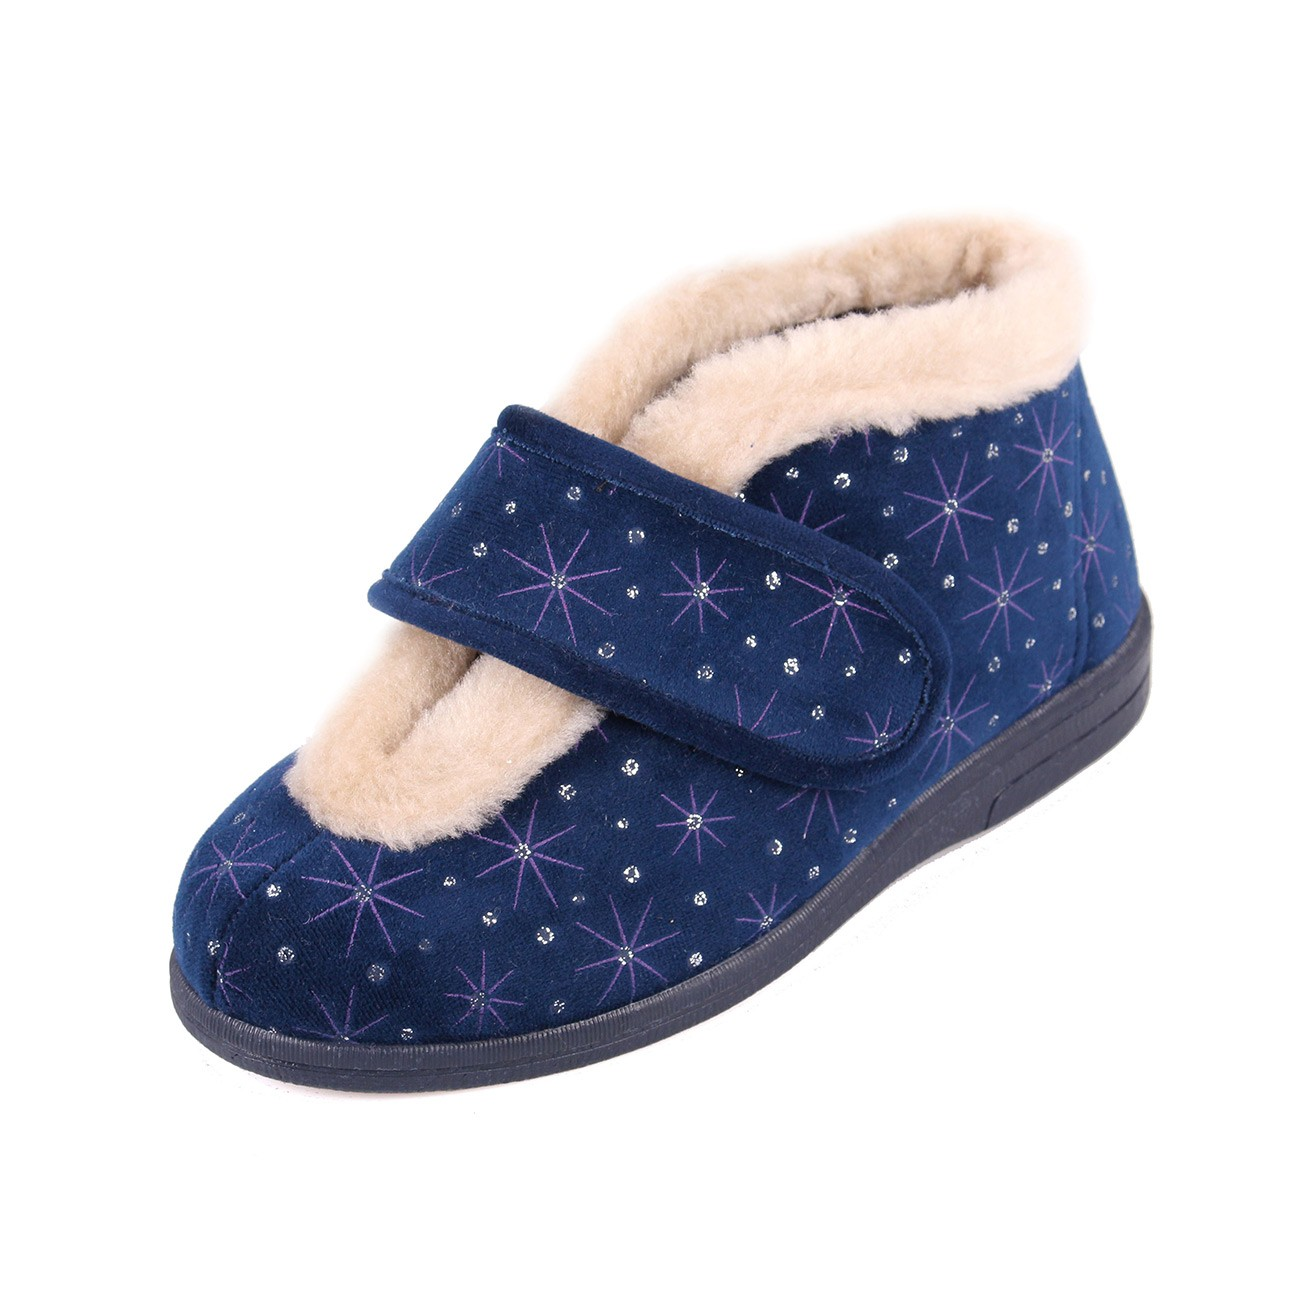 Sandpiper Val Navy Starburst Ladies Slipper